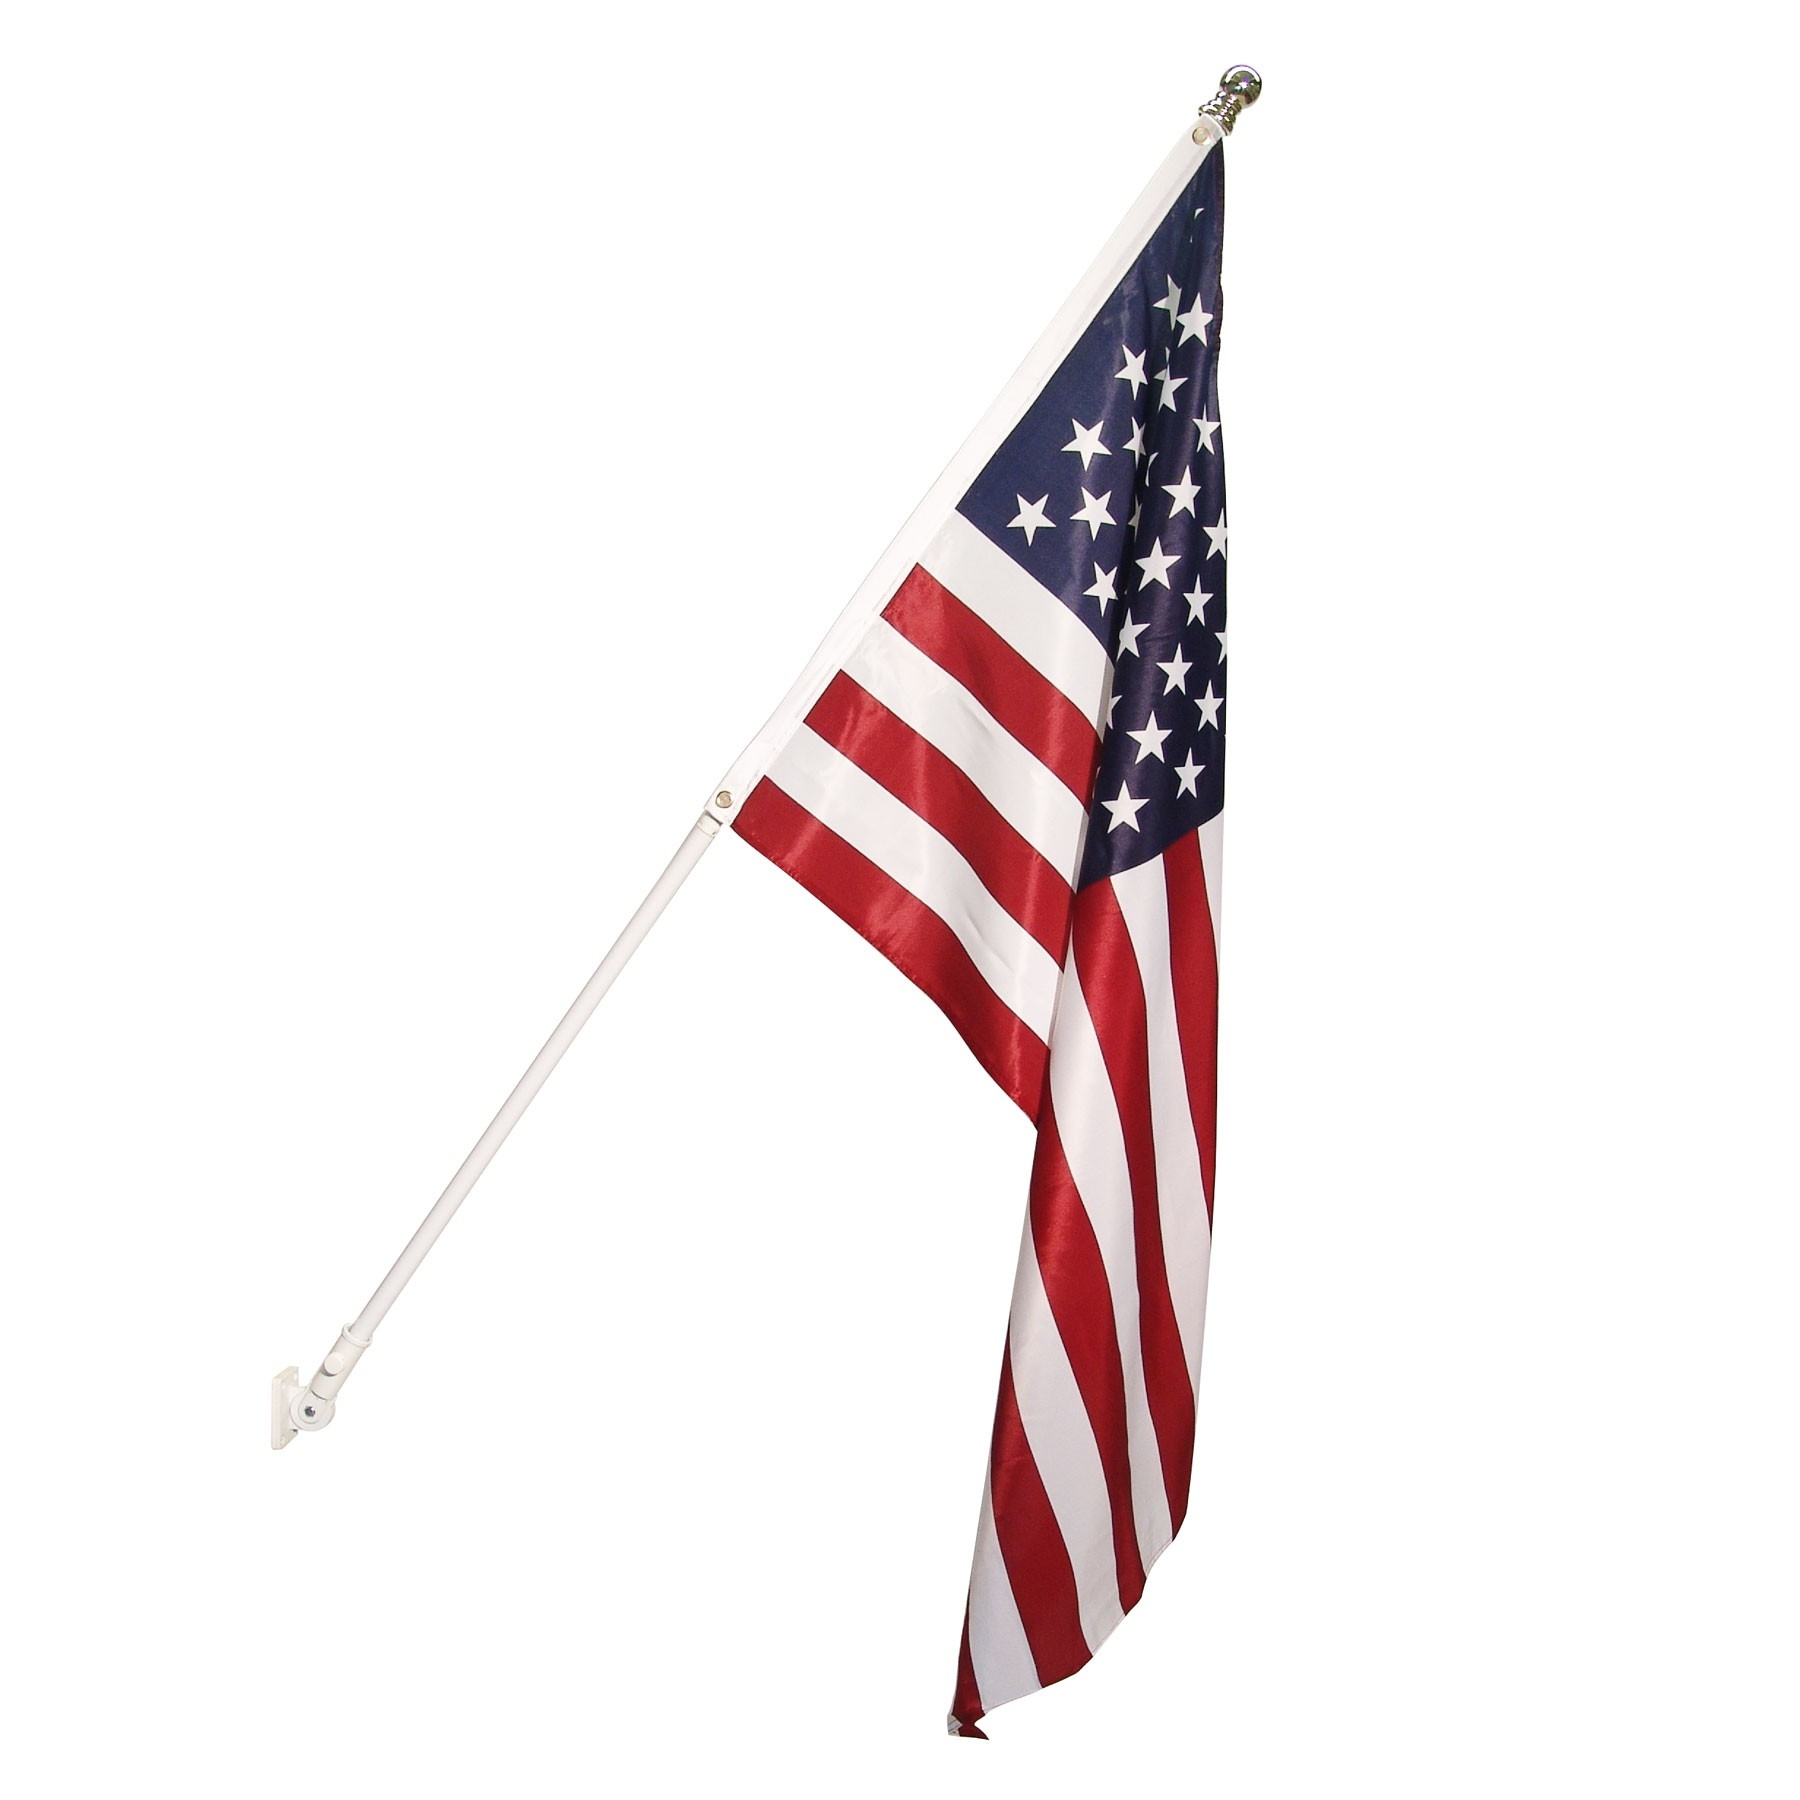 Hanging american flag clipart ClipartFest